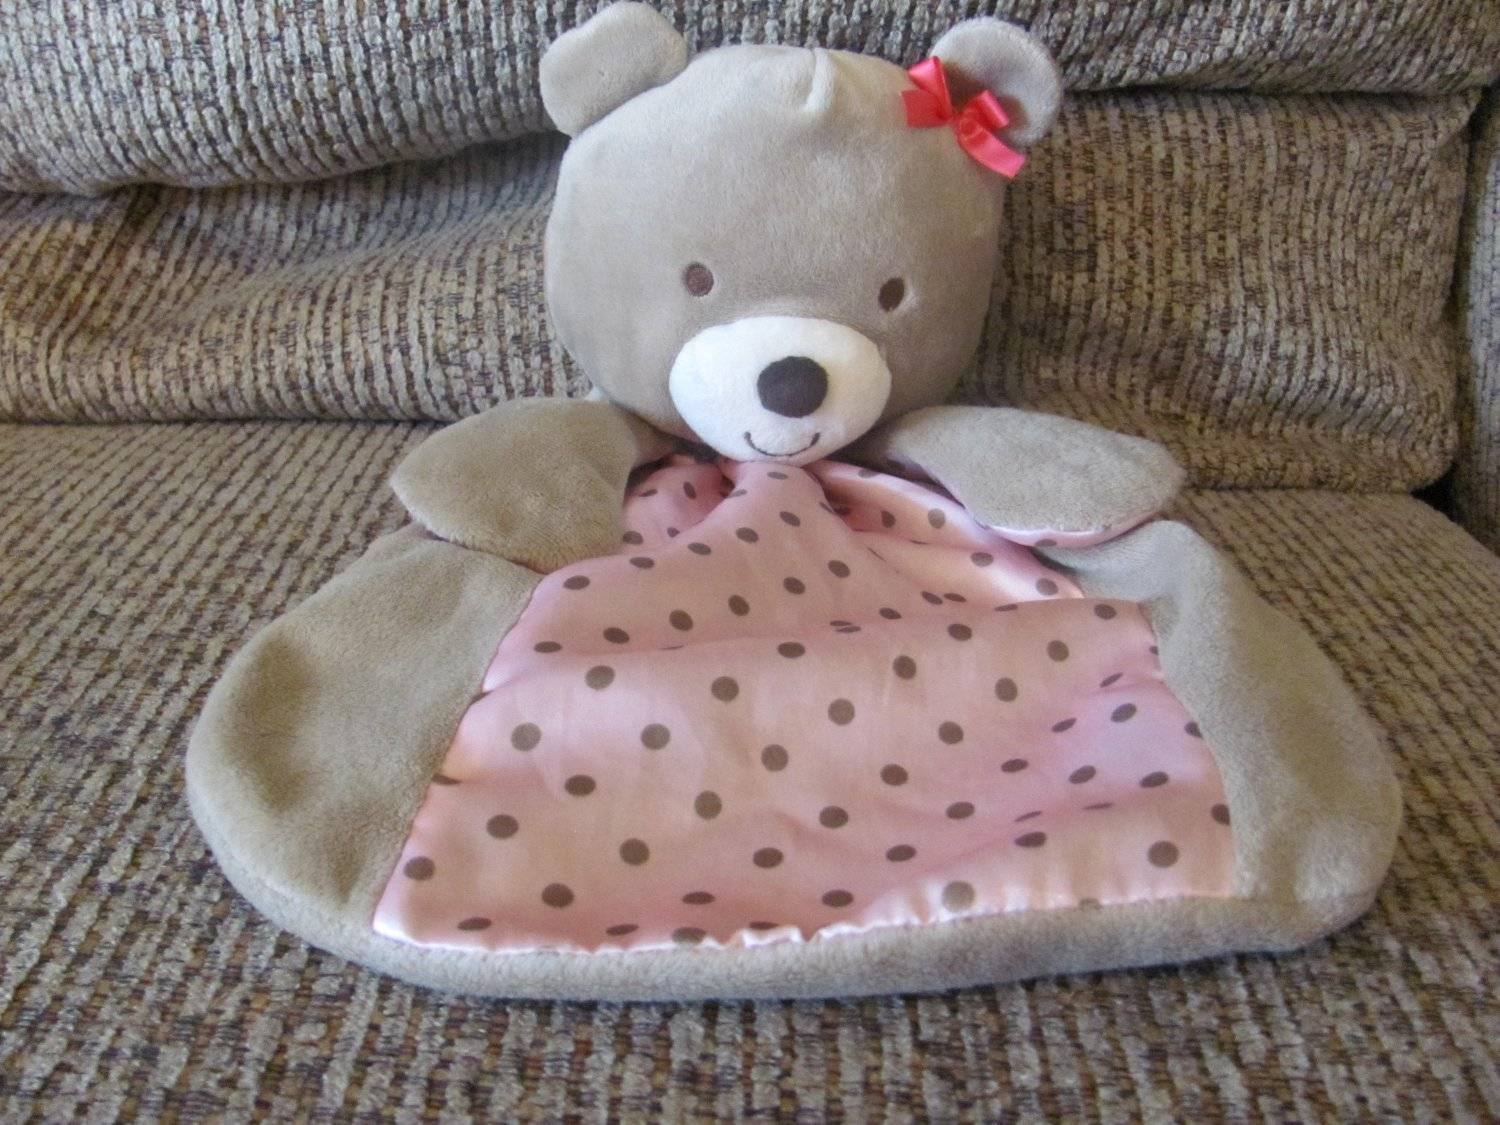 Carters Just One You Tan Bear Cuddle Me Rattle Pink Polka Dots Security Blanket Lovey